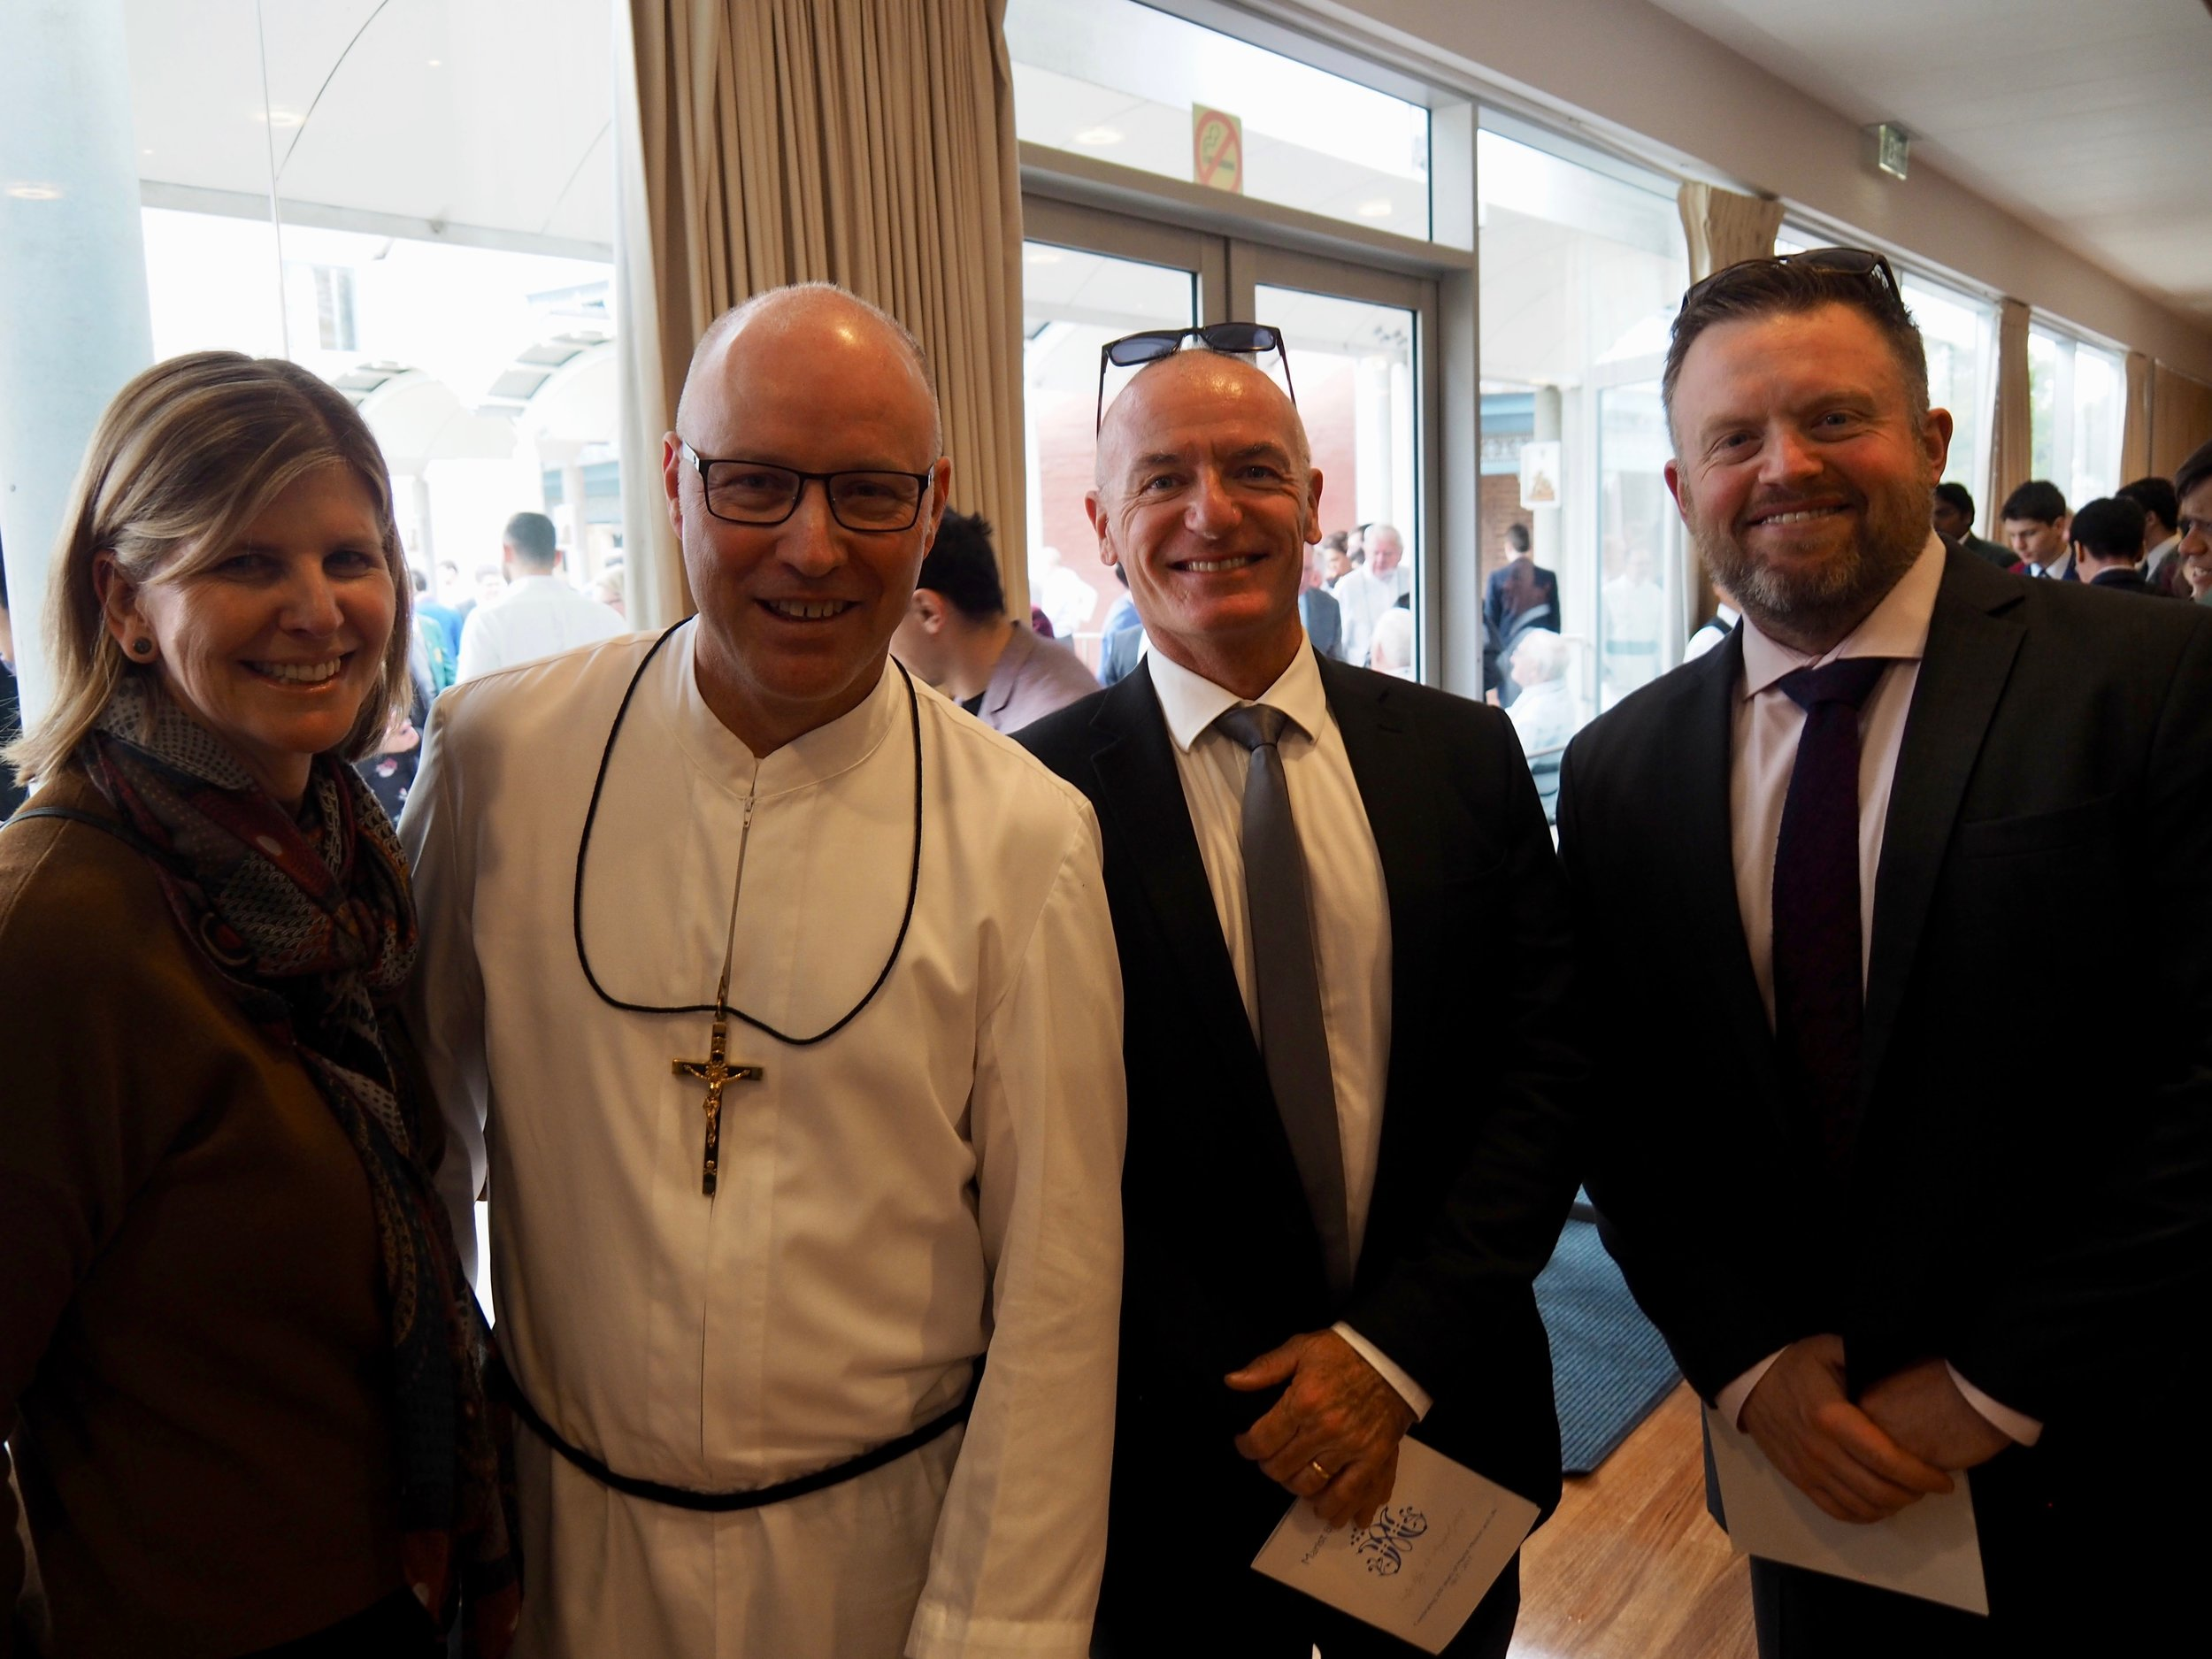 Bicentenary Mass Sydney 12 Aug 2017 Photos by Paul Harris 00136.jpg